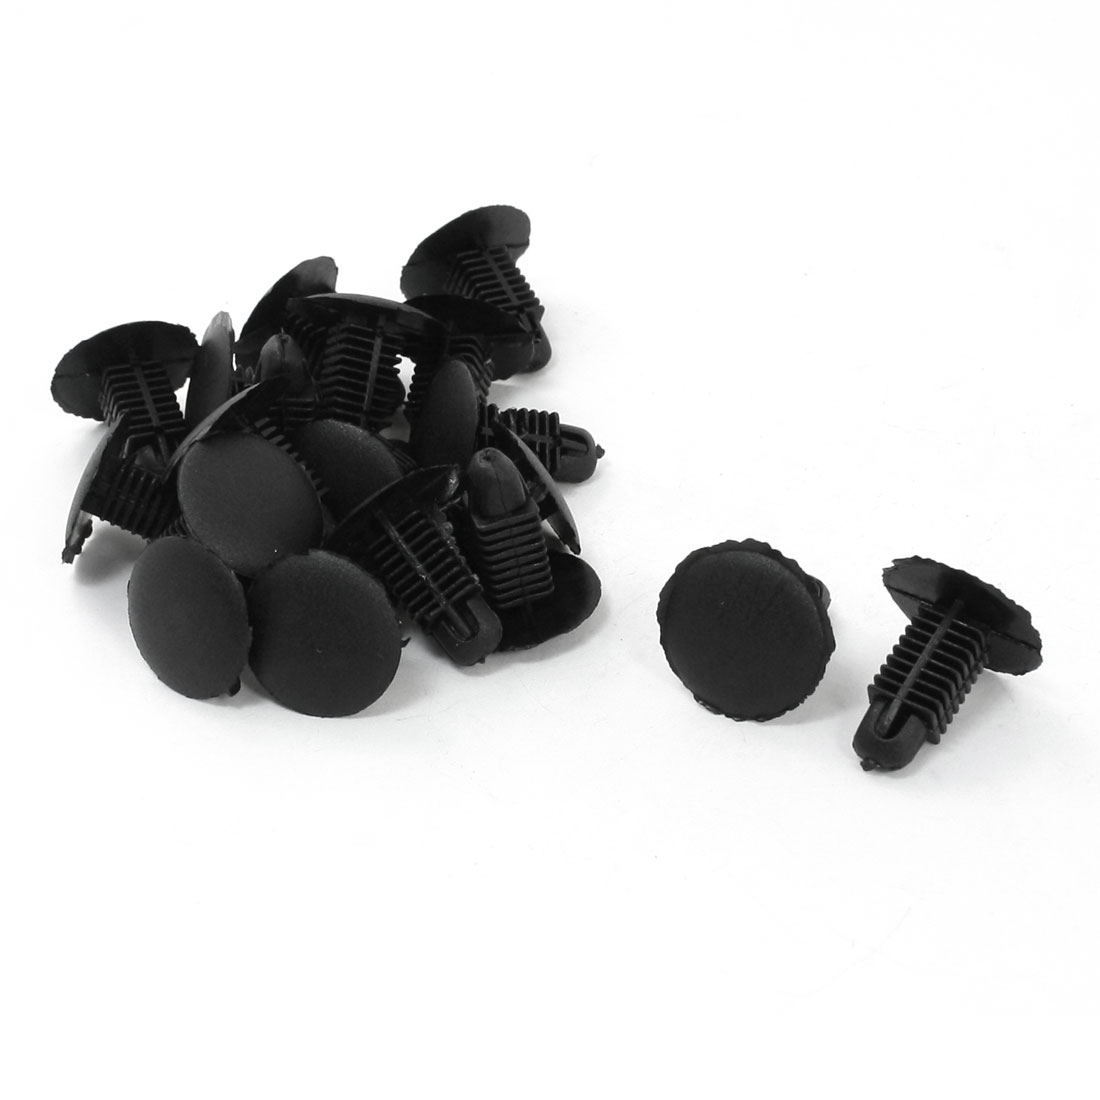 20 Pcs Black Plastic 8 x 12mm Thread Expansion Screws Clips for Car